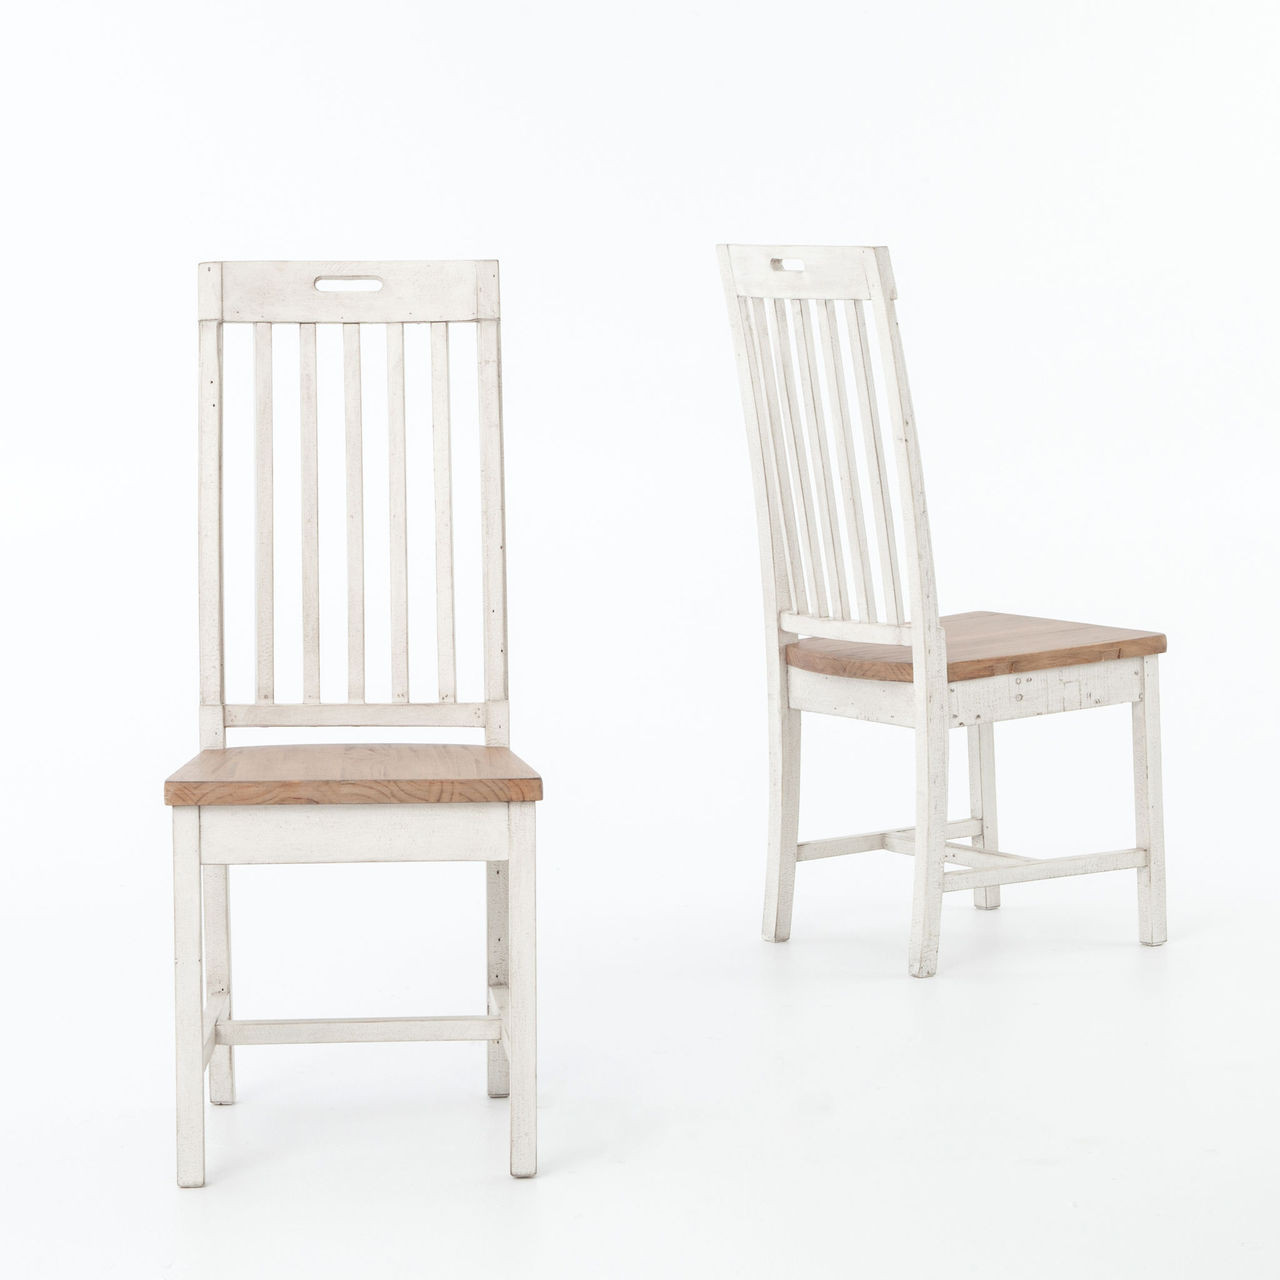 Rustic white dining chairs -  Cintra Rustic White Wood Dining Room Chairs